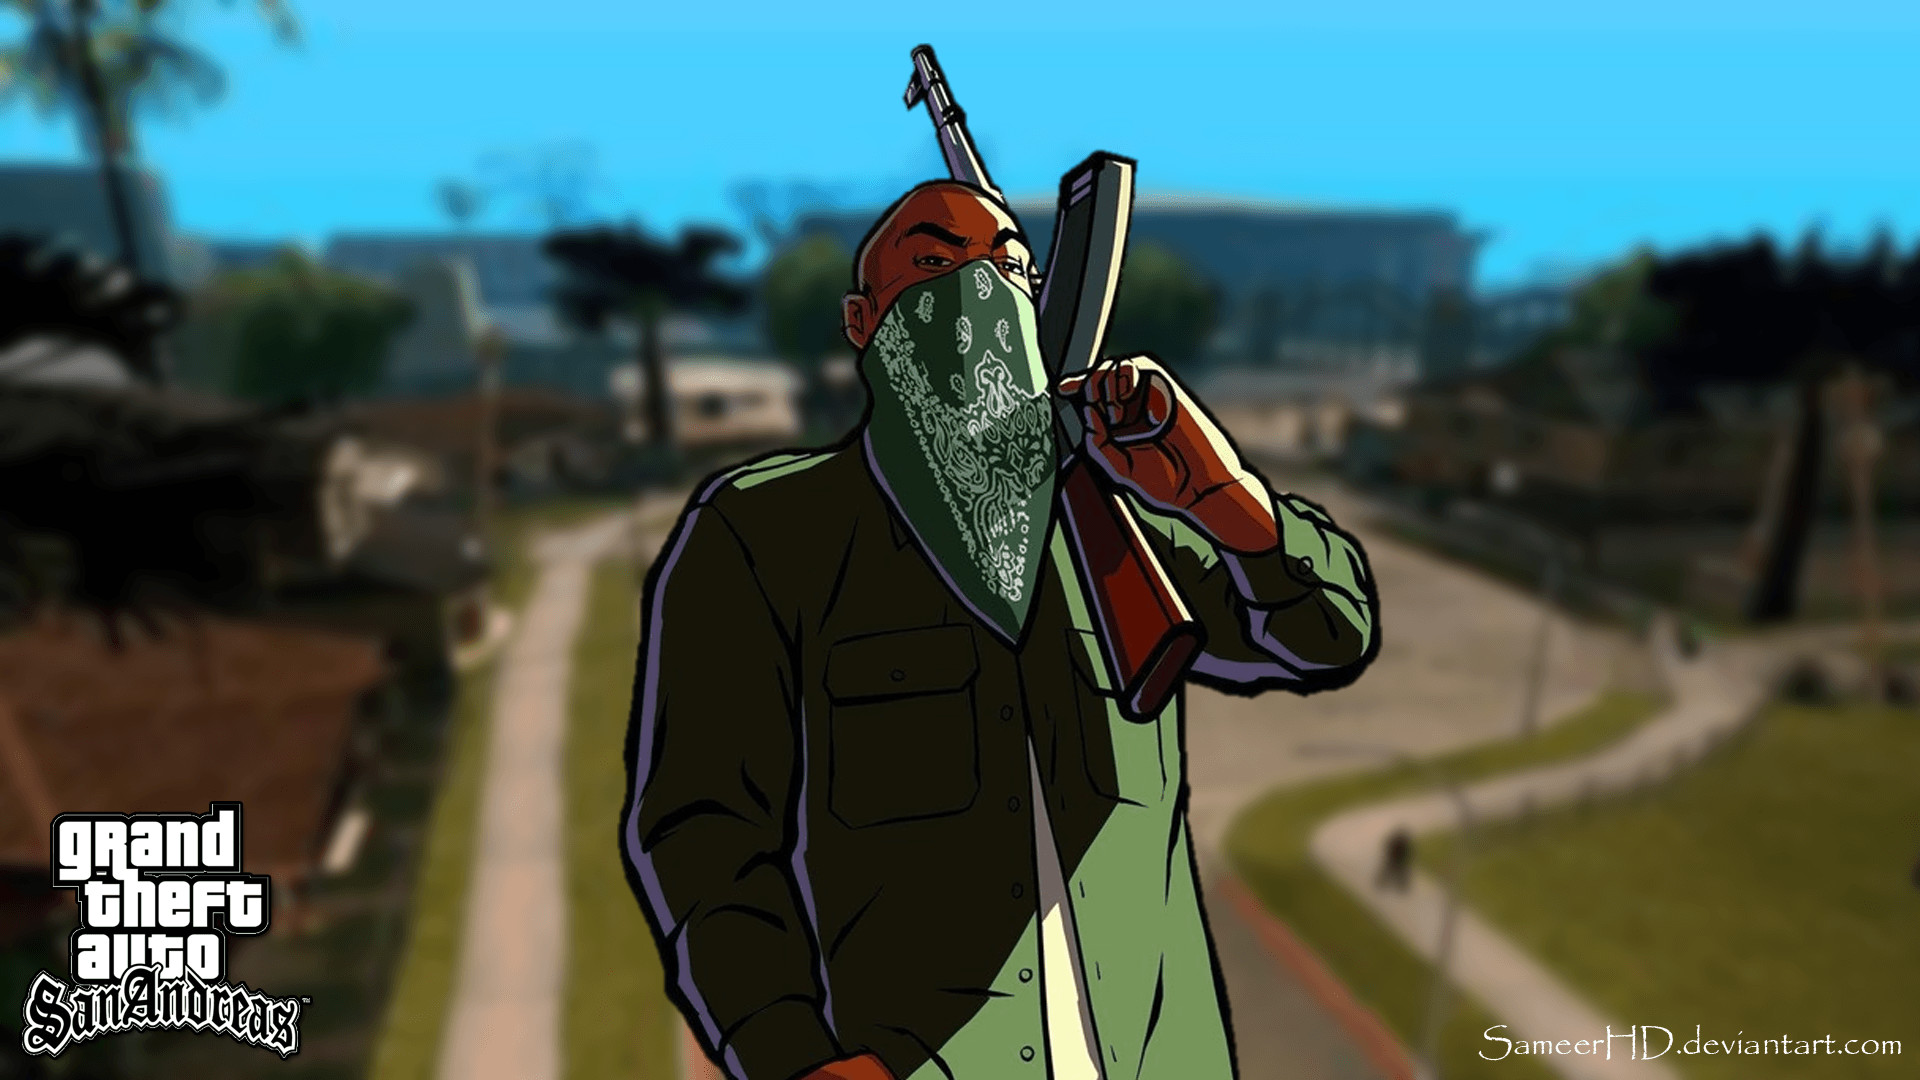 Grand Theft Auto San Andreas Wallpapers 55 images 1920x1080